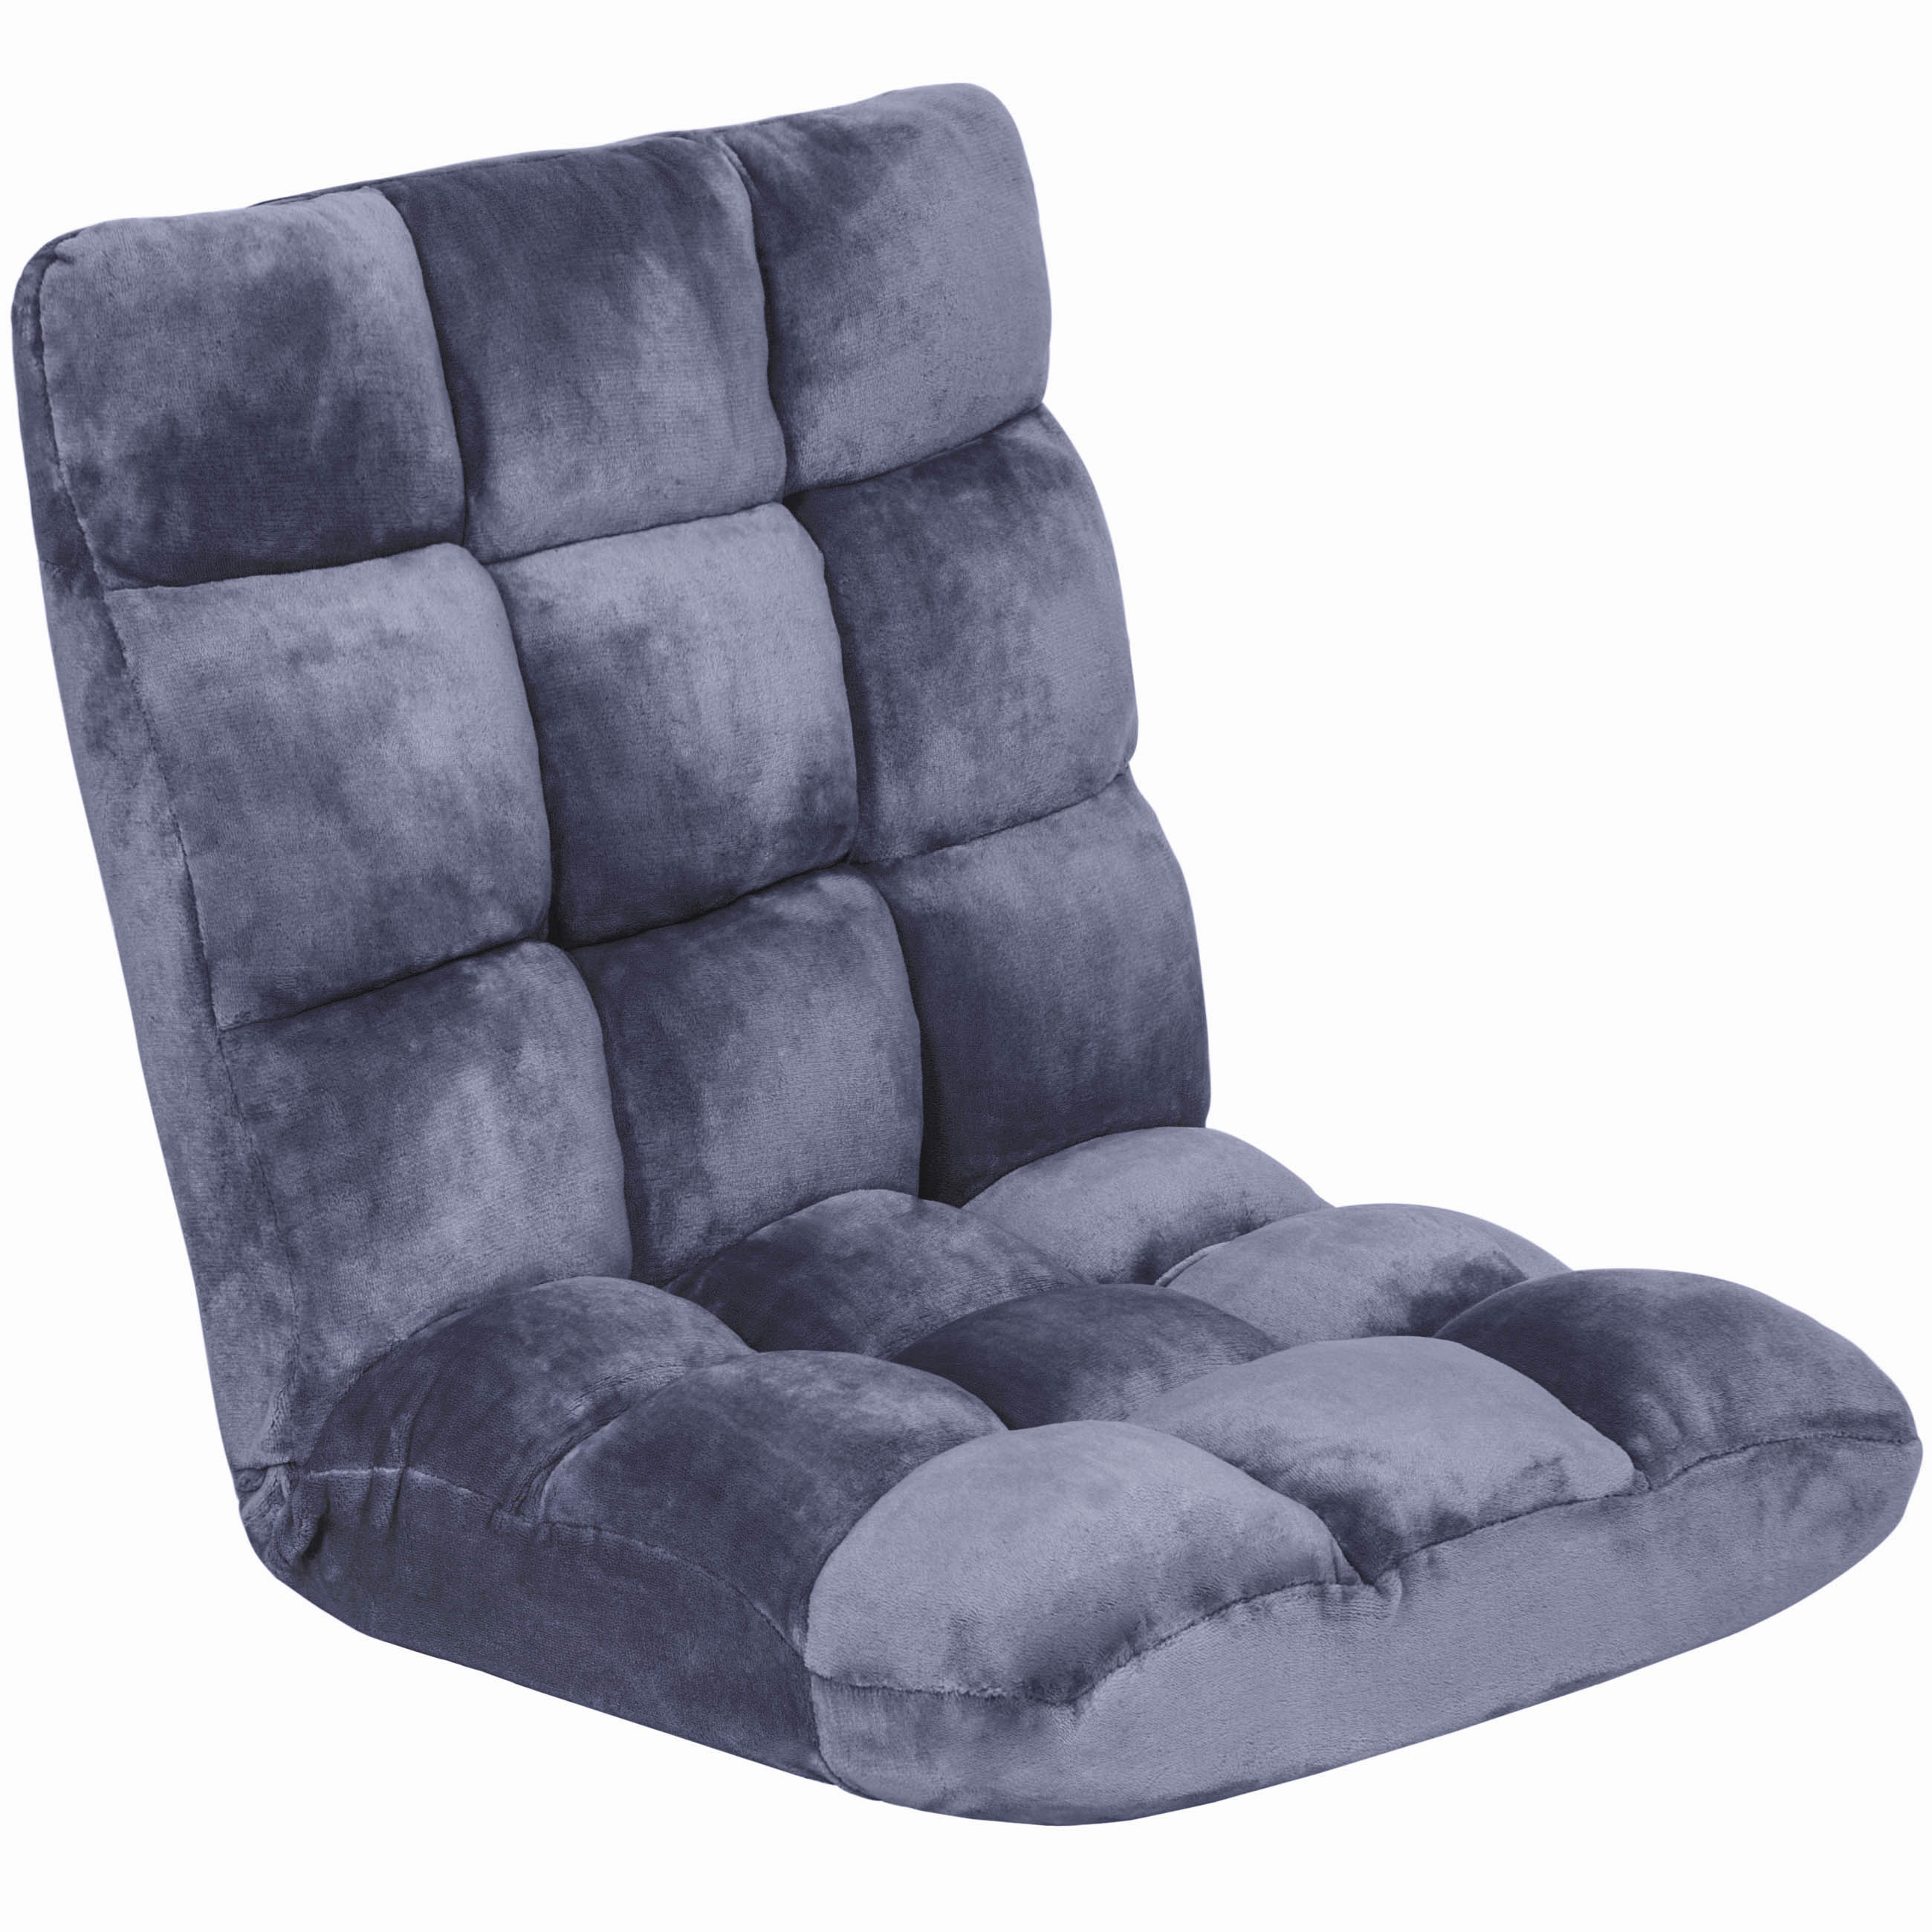 Best Choice Products Adjustable Memory Foam Cushioned Gaming Floor Chair (Eggplant)